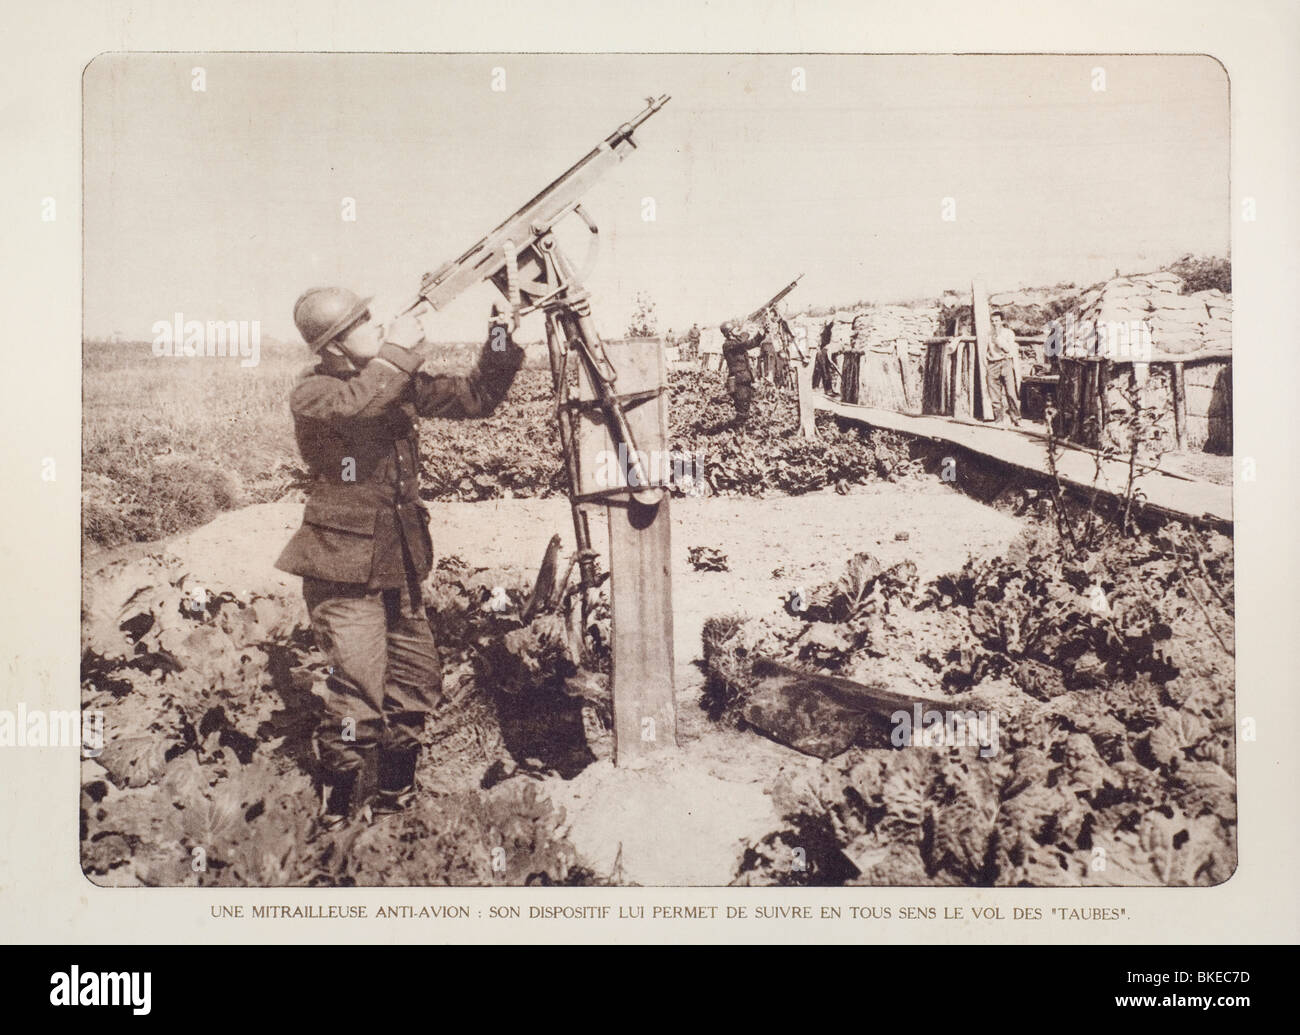 Belgian WW1 soldiers in trench armed with anti-aircraft guns